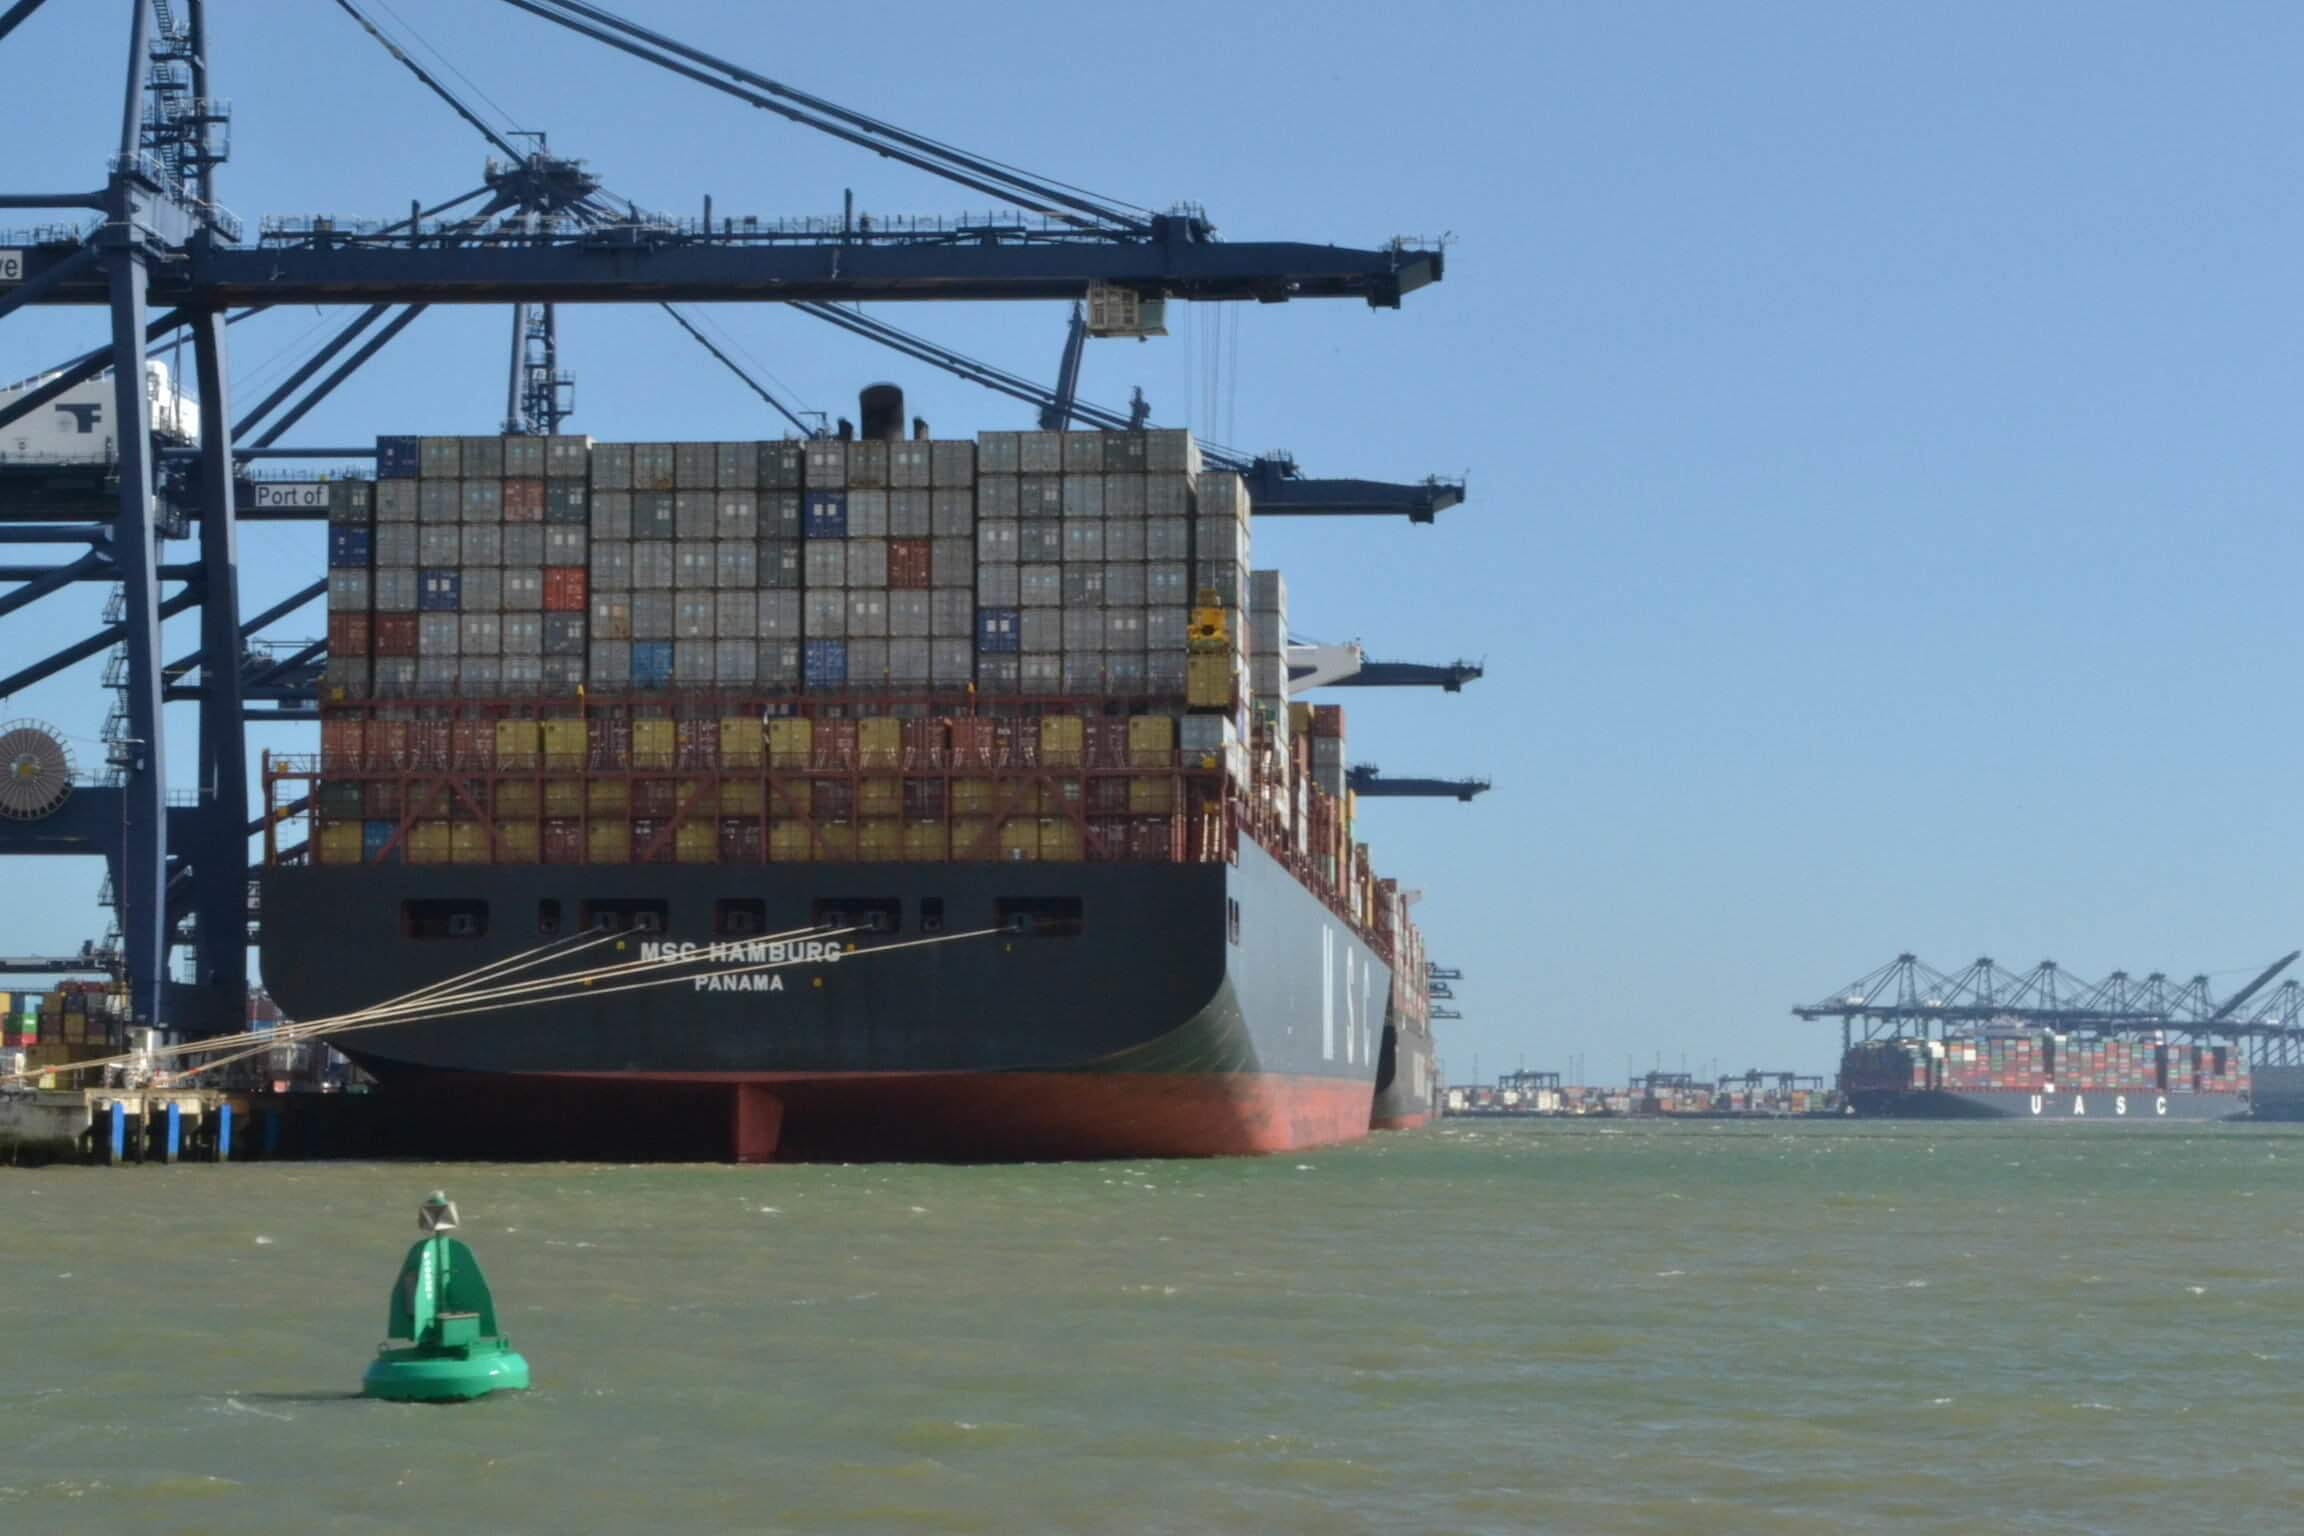 Container ship at Felixstowe port